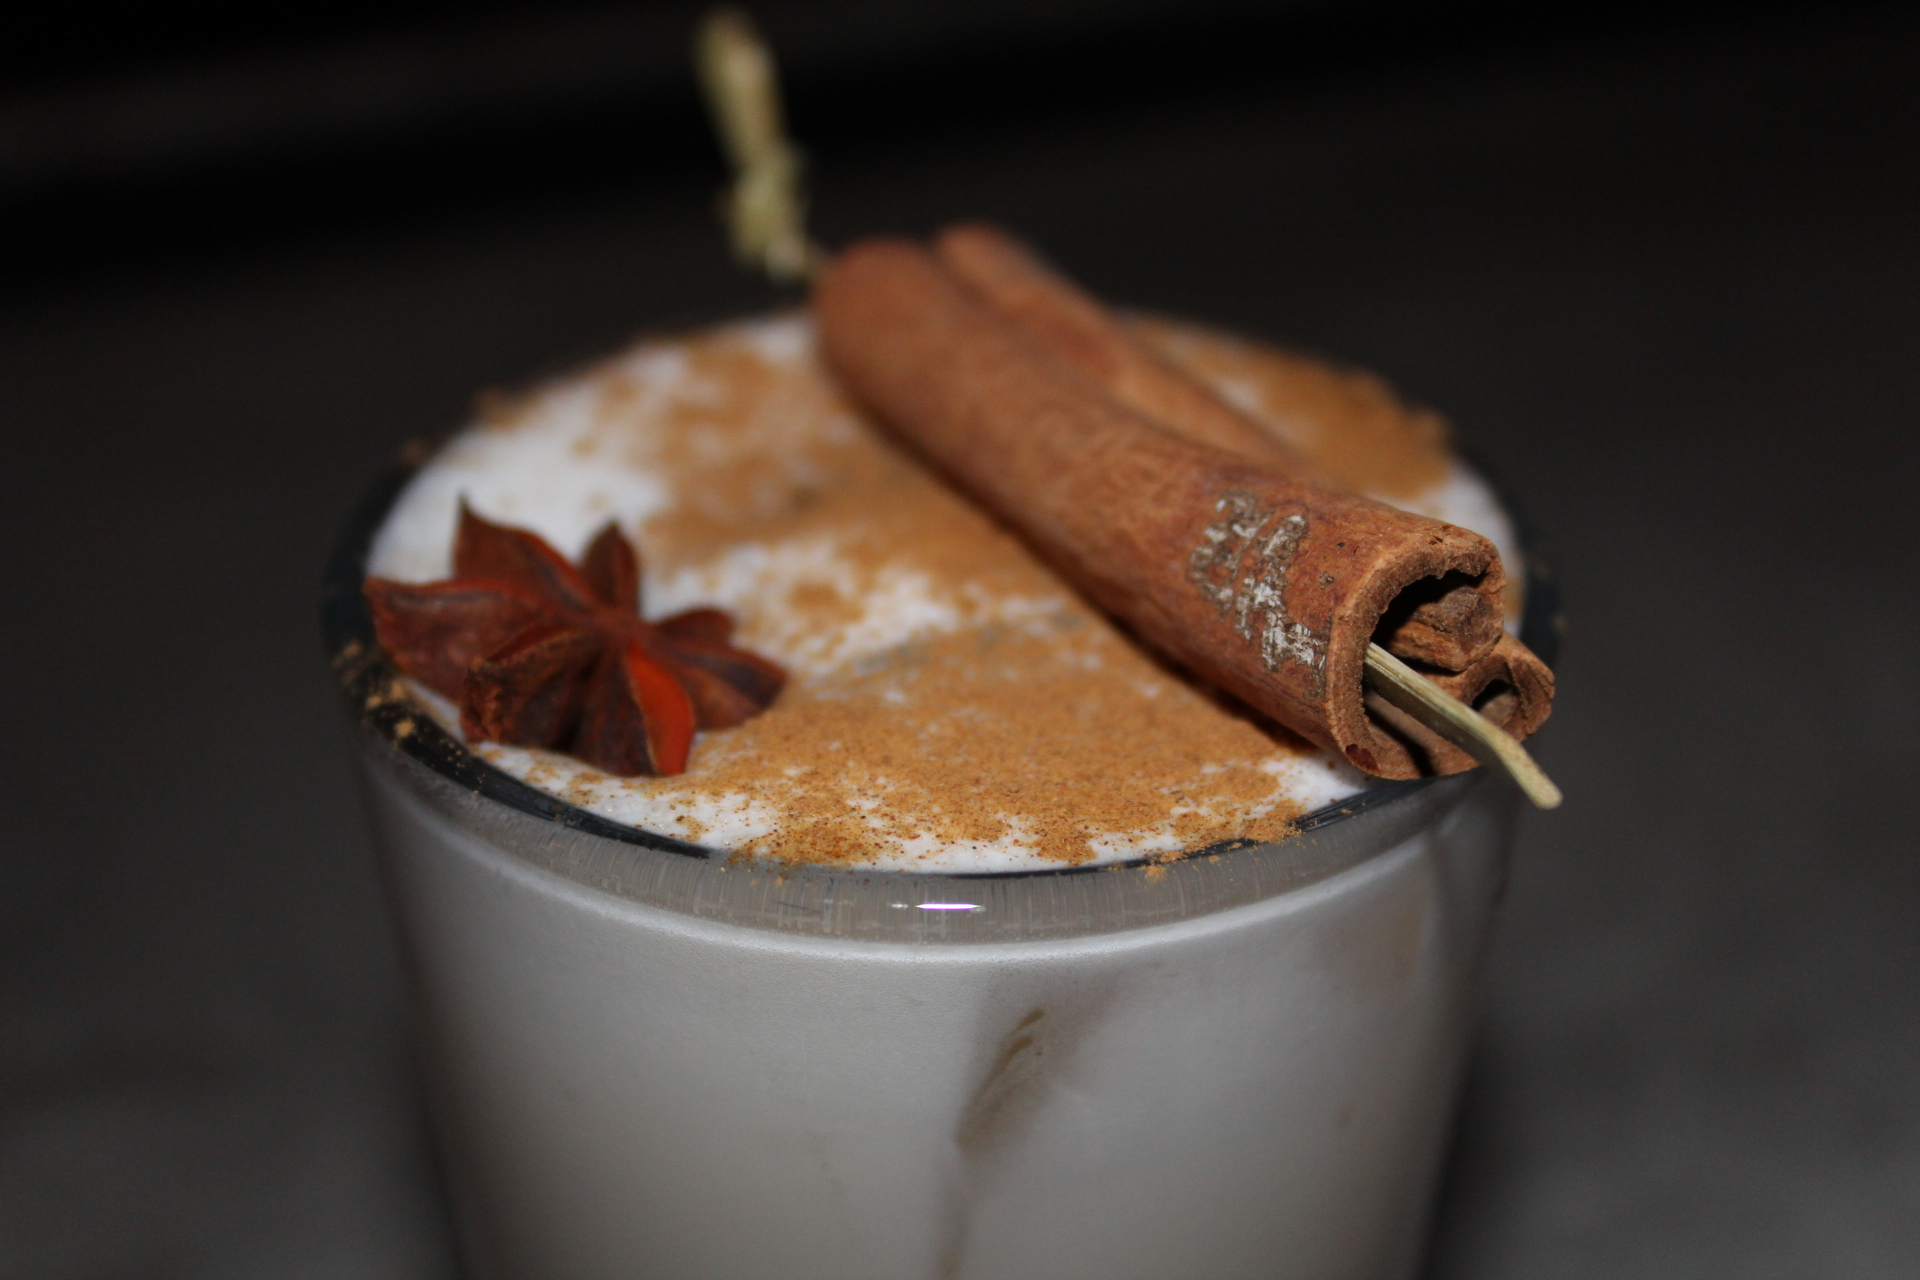 WINTER WONDERLAND - Jack Daniel's Fire, Rumchata, rice milk, cinnamon, anise star